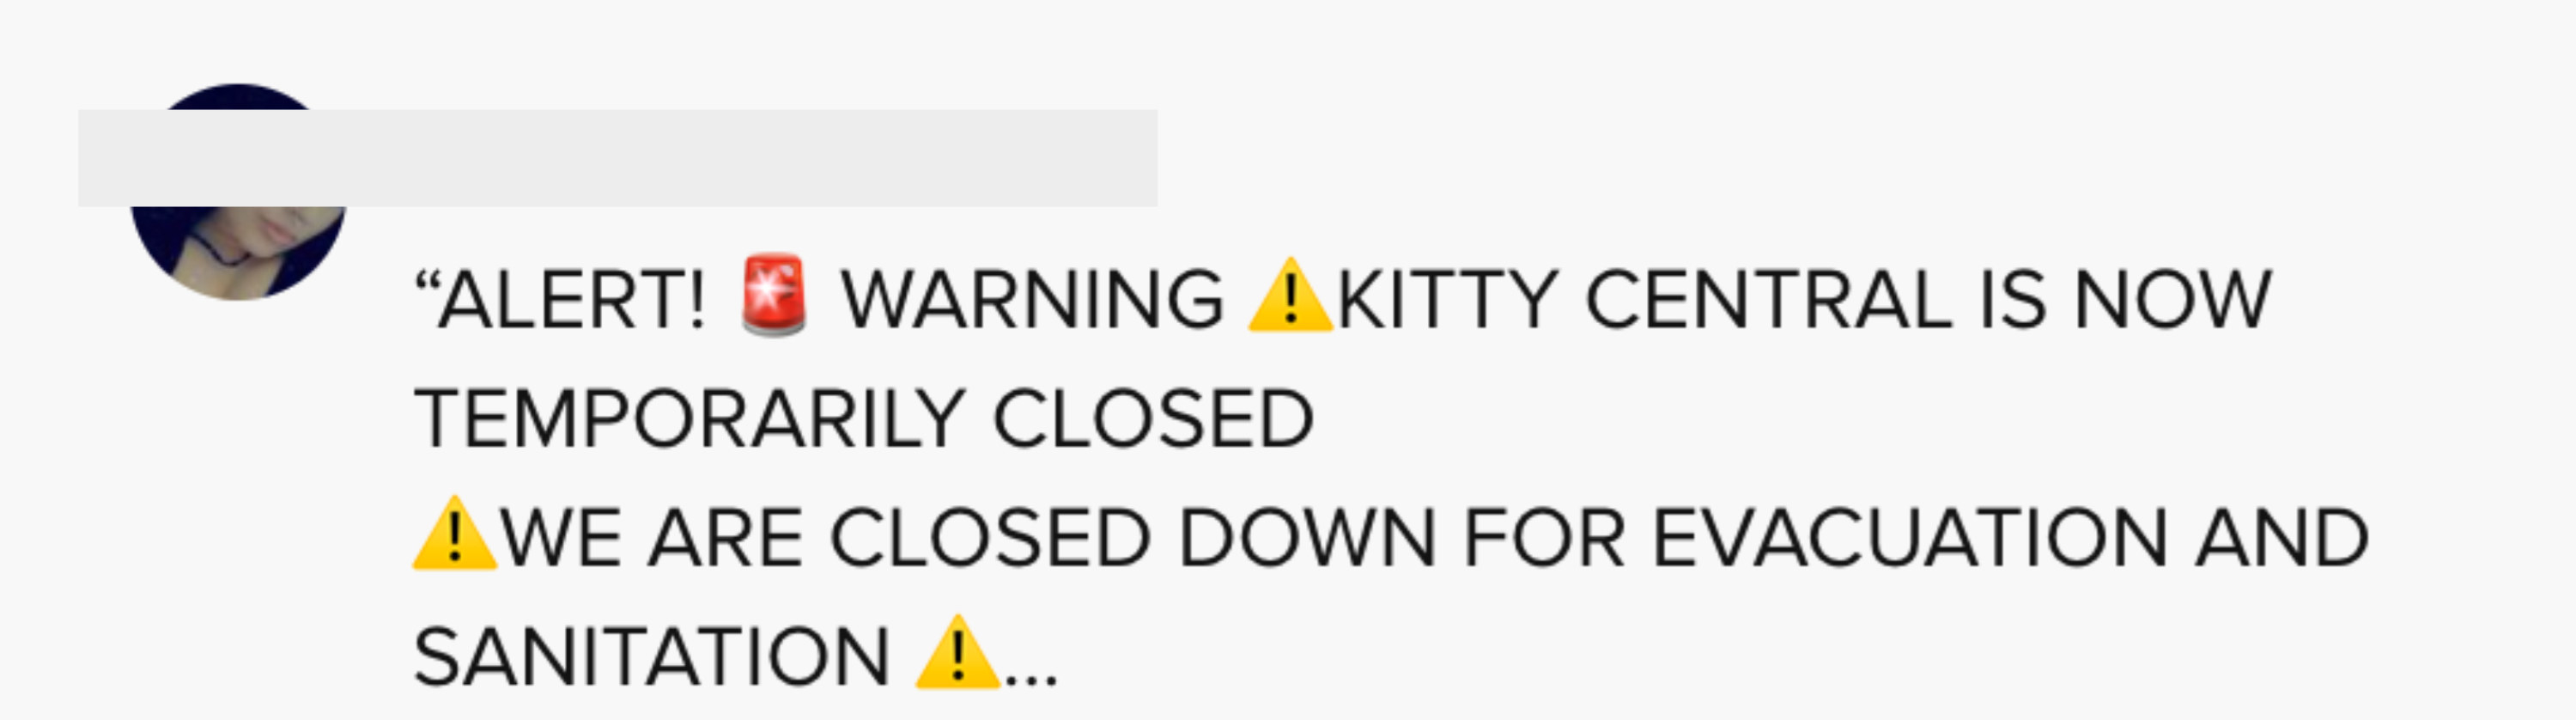 """""""ALERT WARNING KITTY CENTRAL IS NOW TEMPORARILY CLOSED WE ARE CLOSED DOWN FOR EVACUATION AND SANITATION"""""""